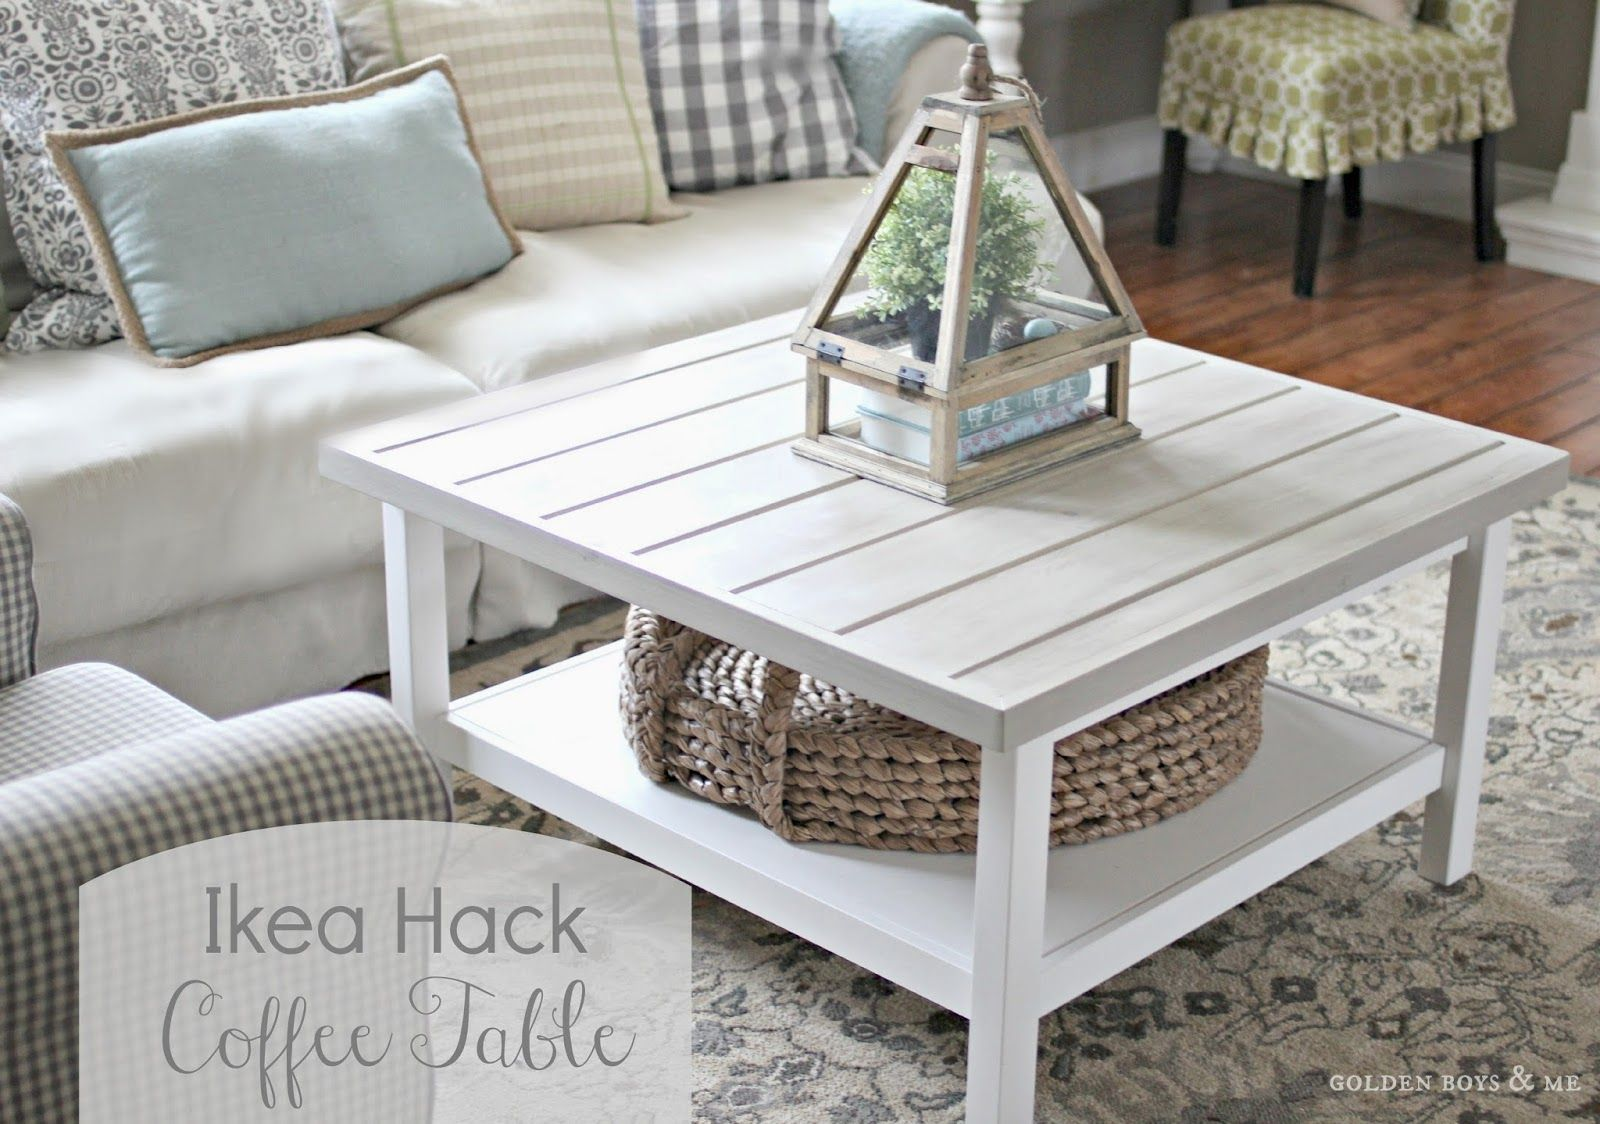 Couchtisch Hemnes Coffee Table Ikea Hack Furniture Diy Couchtisch Tisch